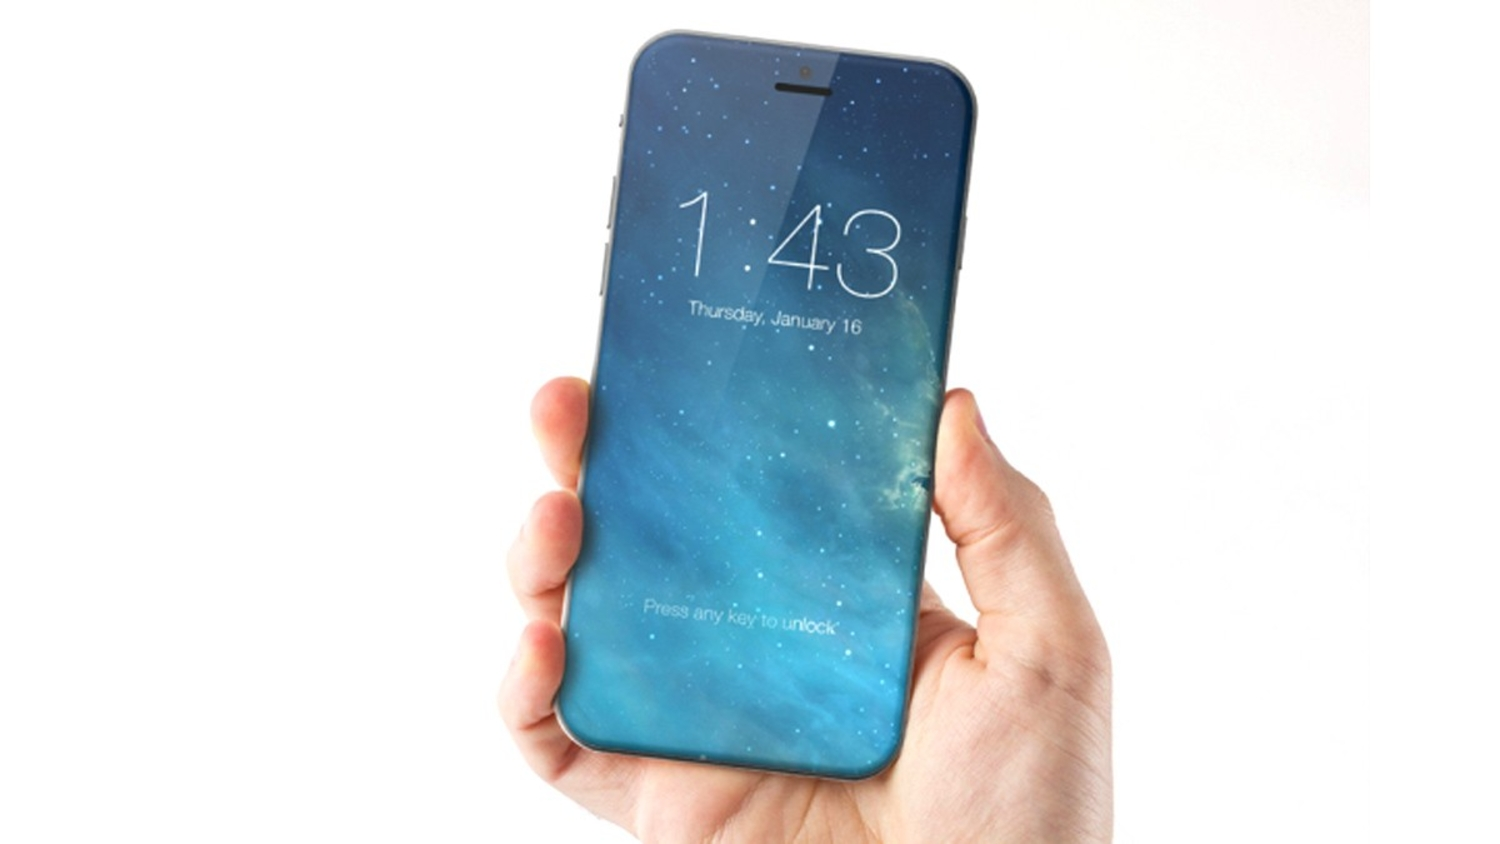 8 Rumors About The iPhone 7